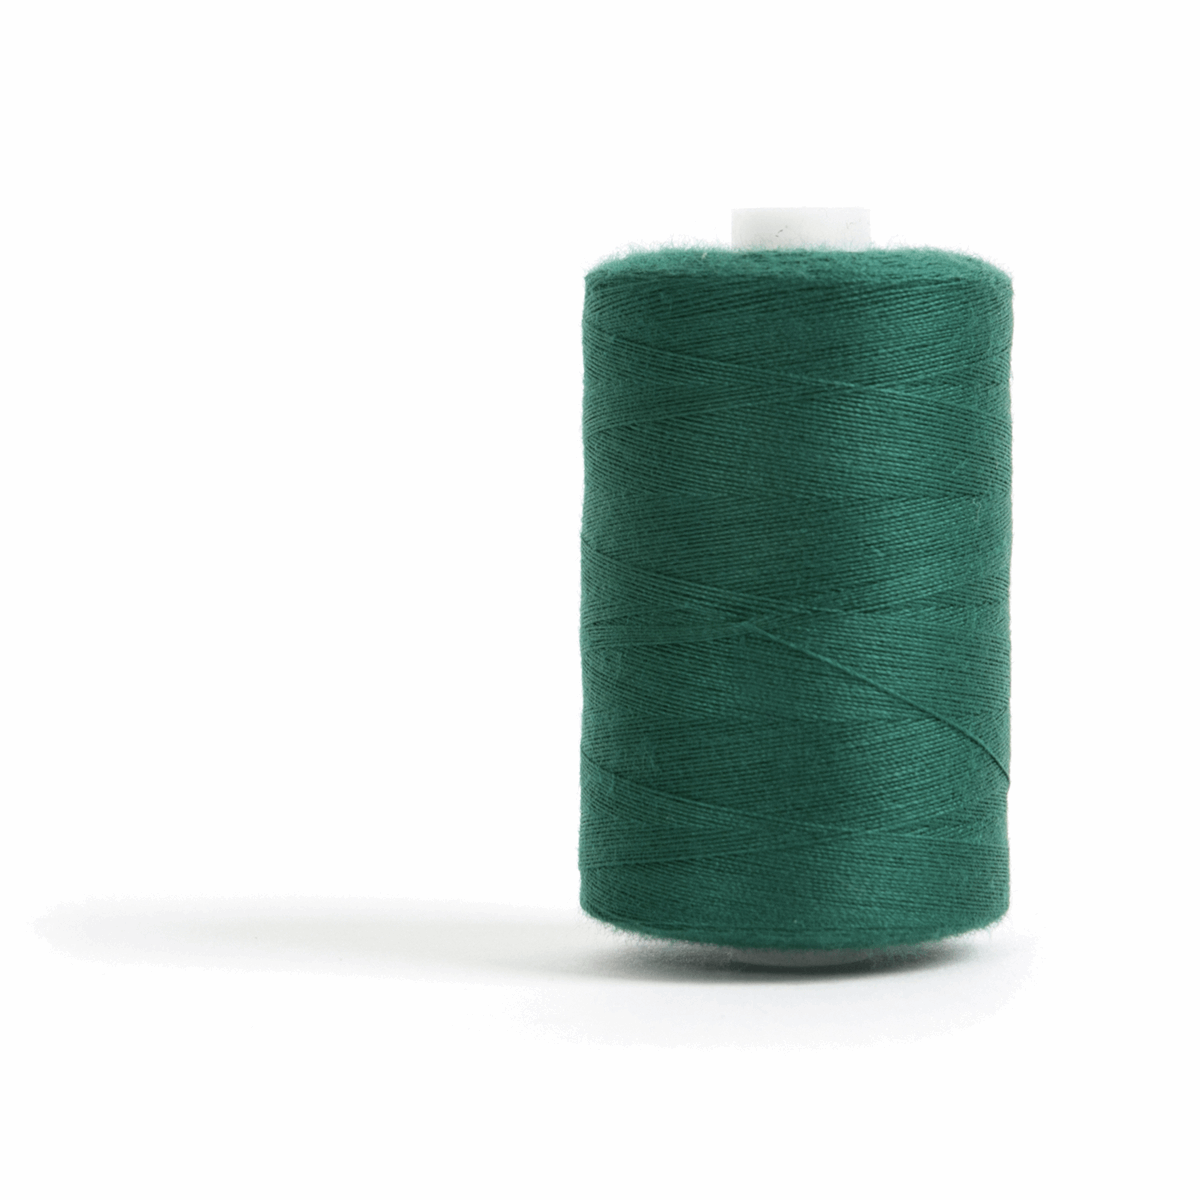 Picture of Sewing and Overlocking Thread: 5 x 1,000m: Bottle